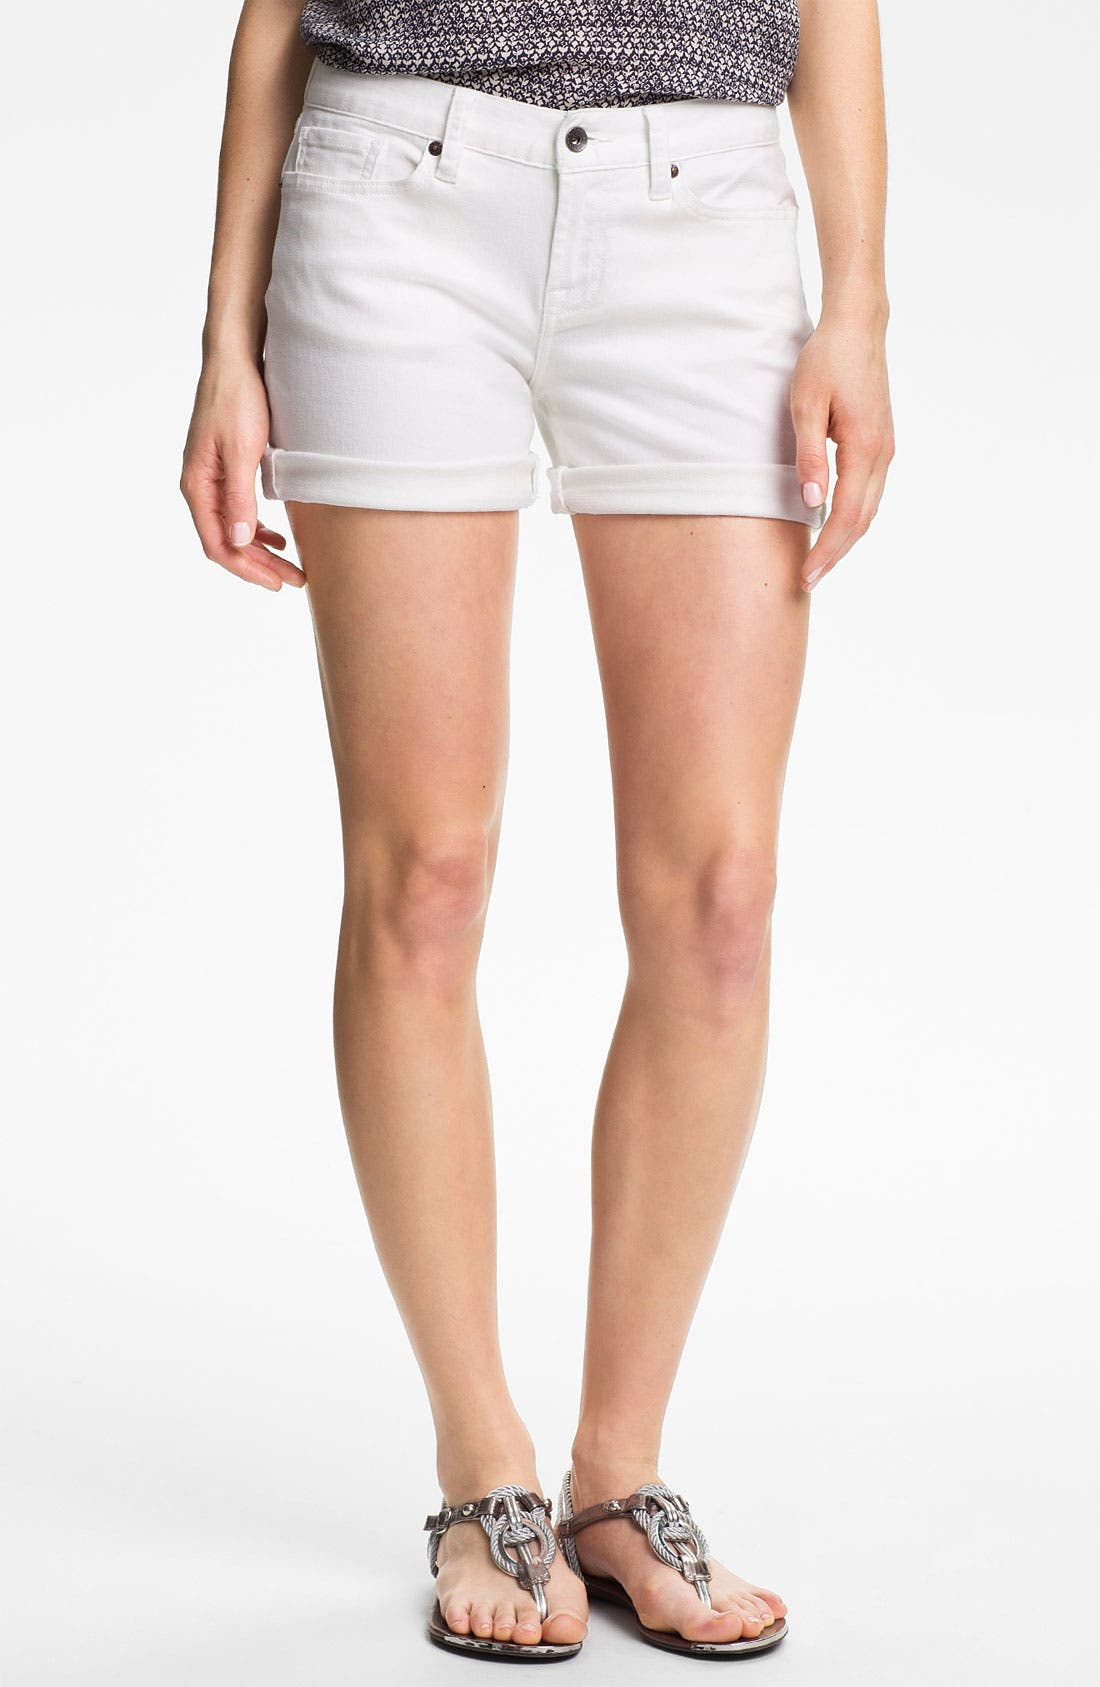 Alternate Image 1 Selected - Lucky Brand 'Abbey' Double Roll Denim Shorts (Pearl) (Online Exclusive)